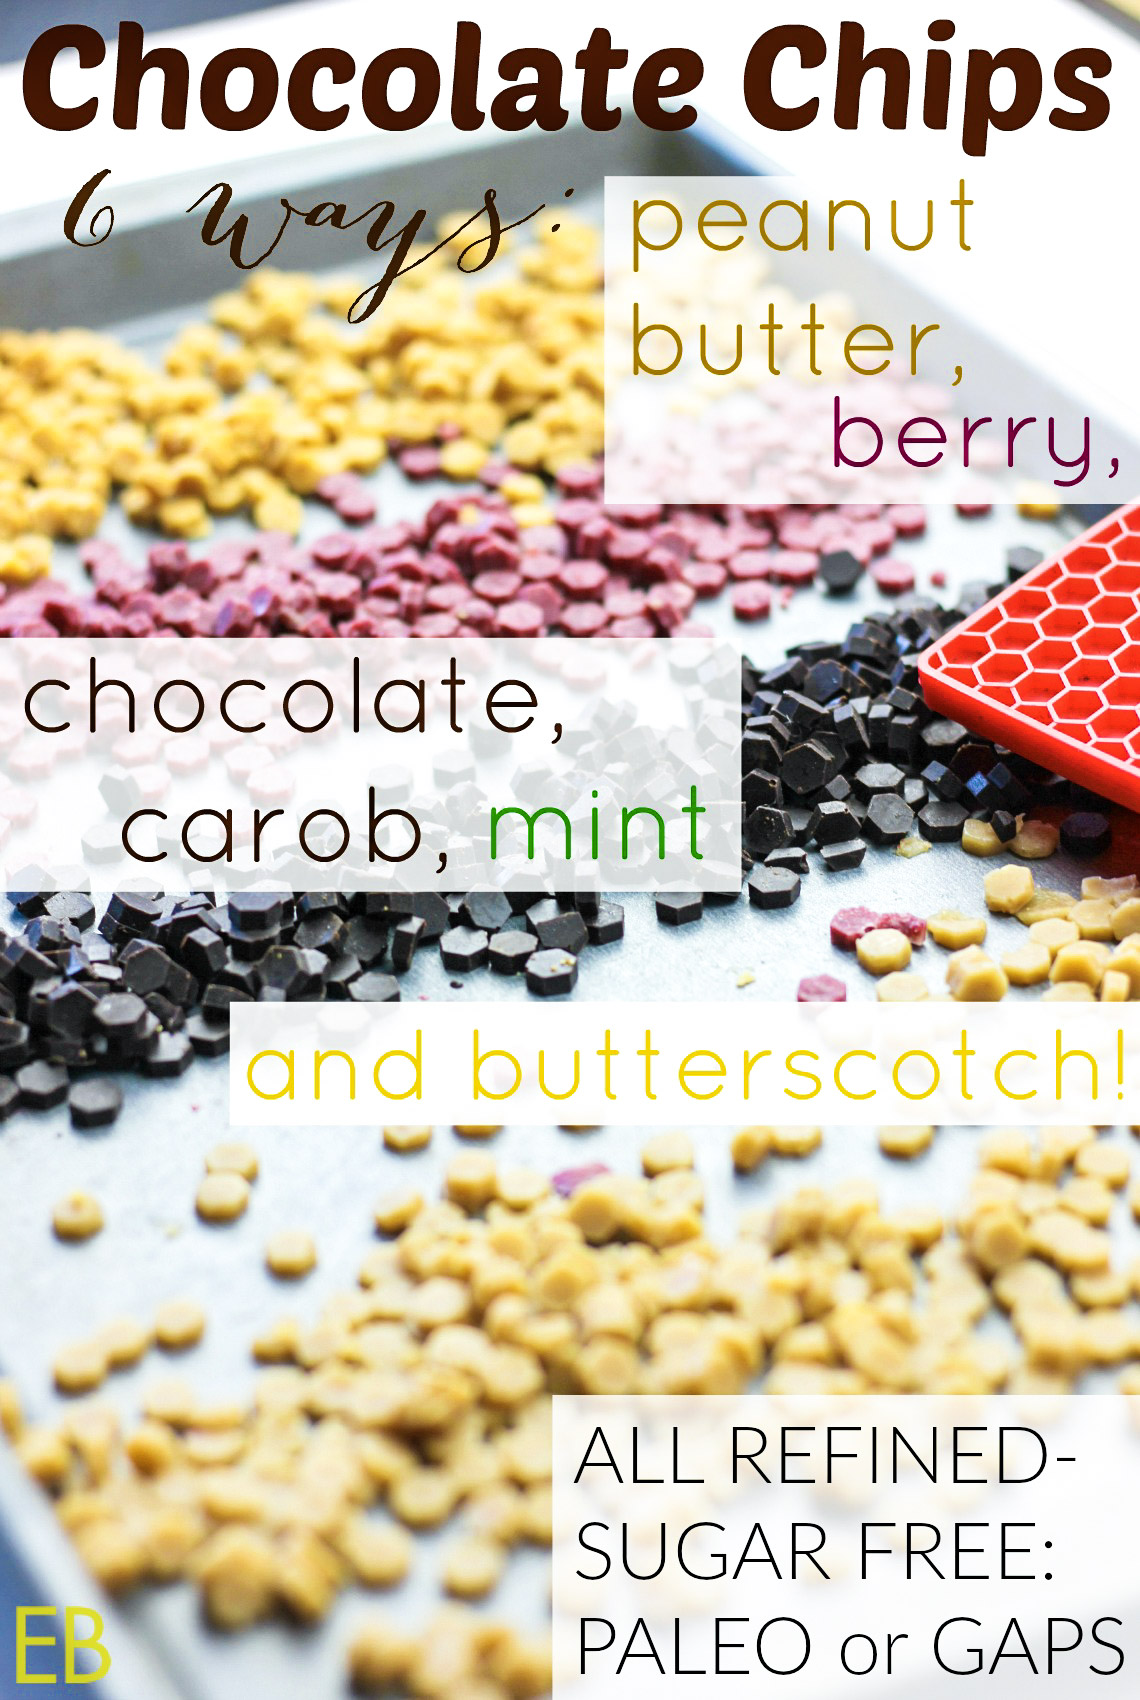 Homemade CHOCOLATE CHIPS 6 Ways: chocolate, carob, peanut butter, butterscotch!!, berry (or fruit), chocolate mint {refined-sugar-free, Paleo/GAPS} #paleo #chocolatechips #paleodessert #gapsdiet #aip #dessert